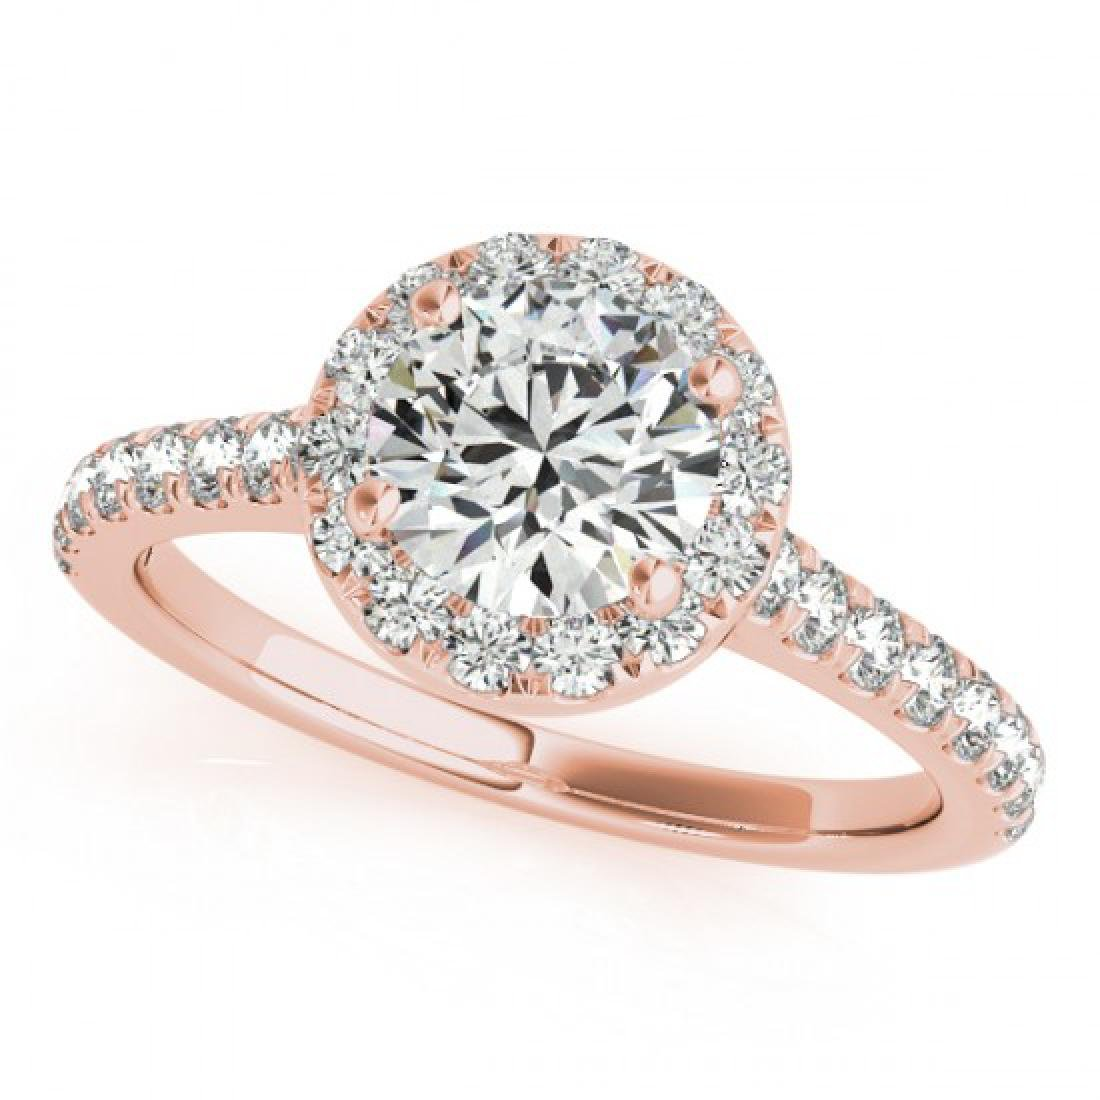 1.7 CTW Certified VS/SI Diamond Solitaire Halo Ring 14K